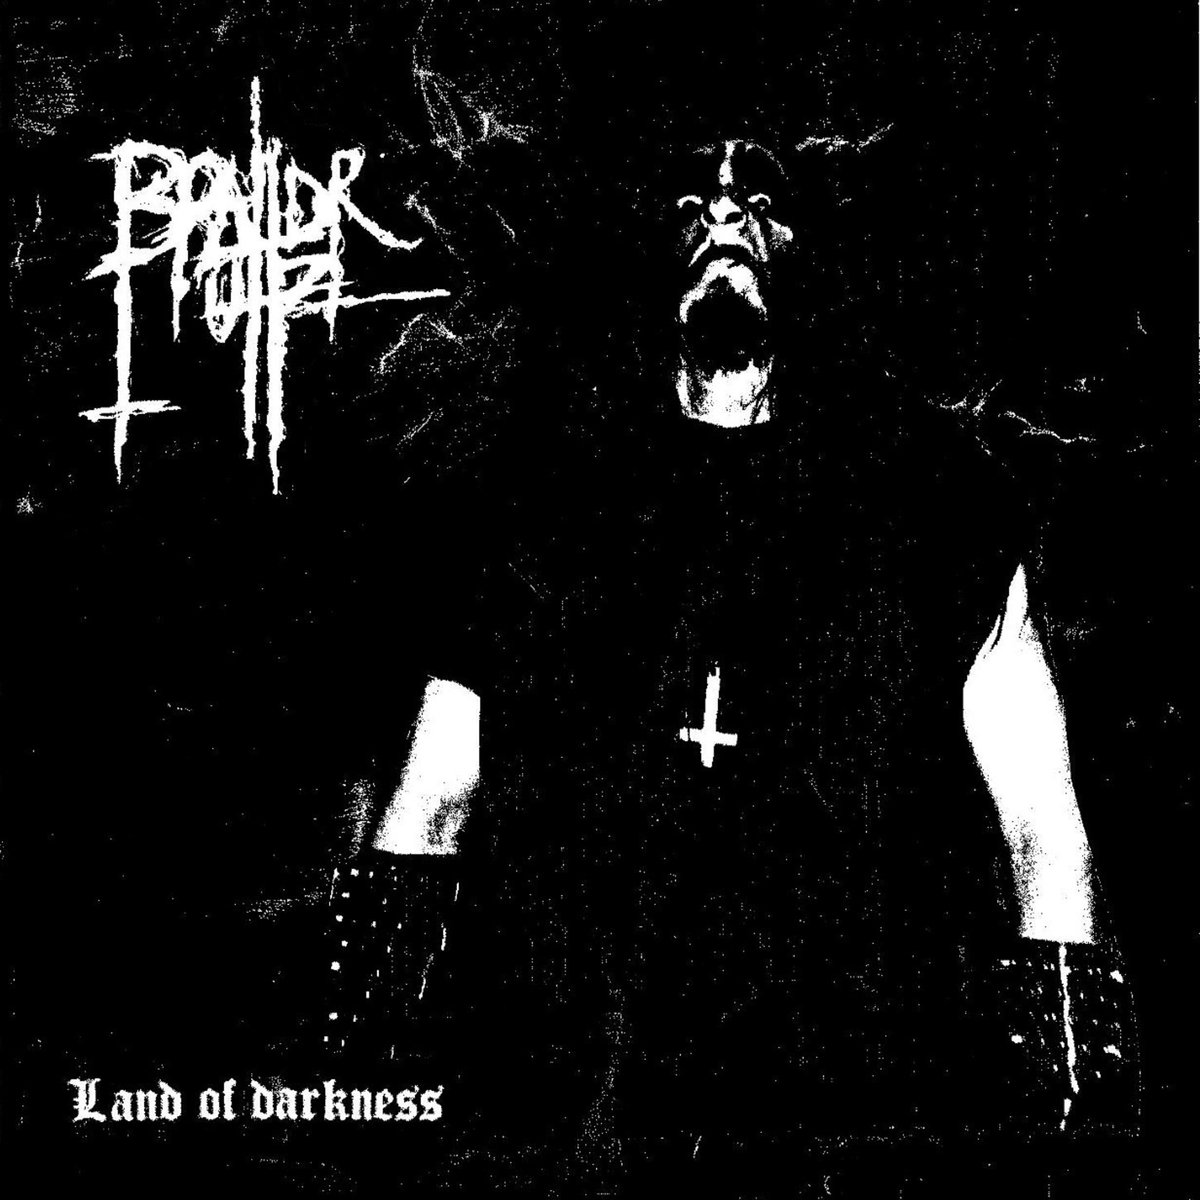 Brahdr'uhz - Land of darkness